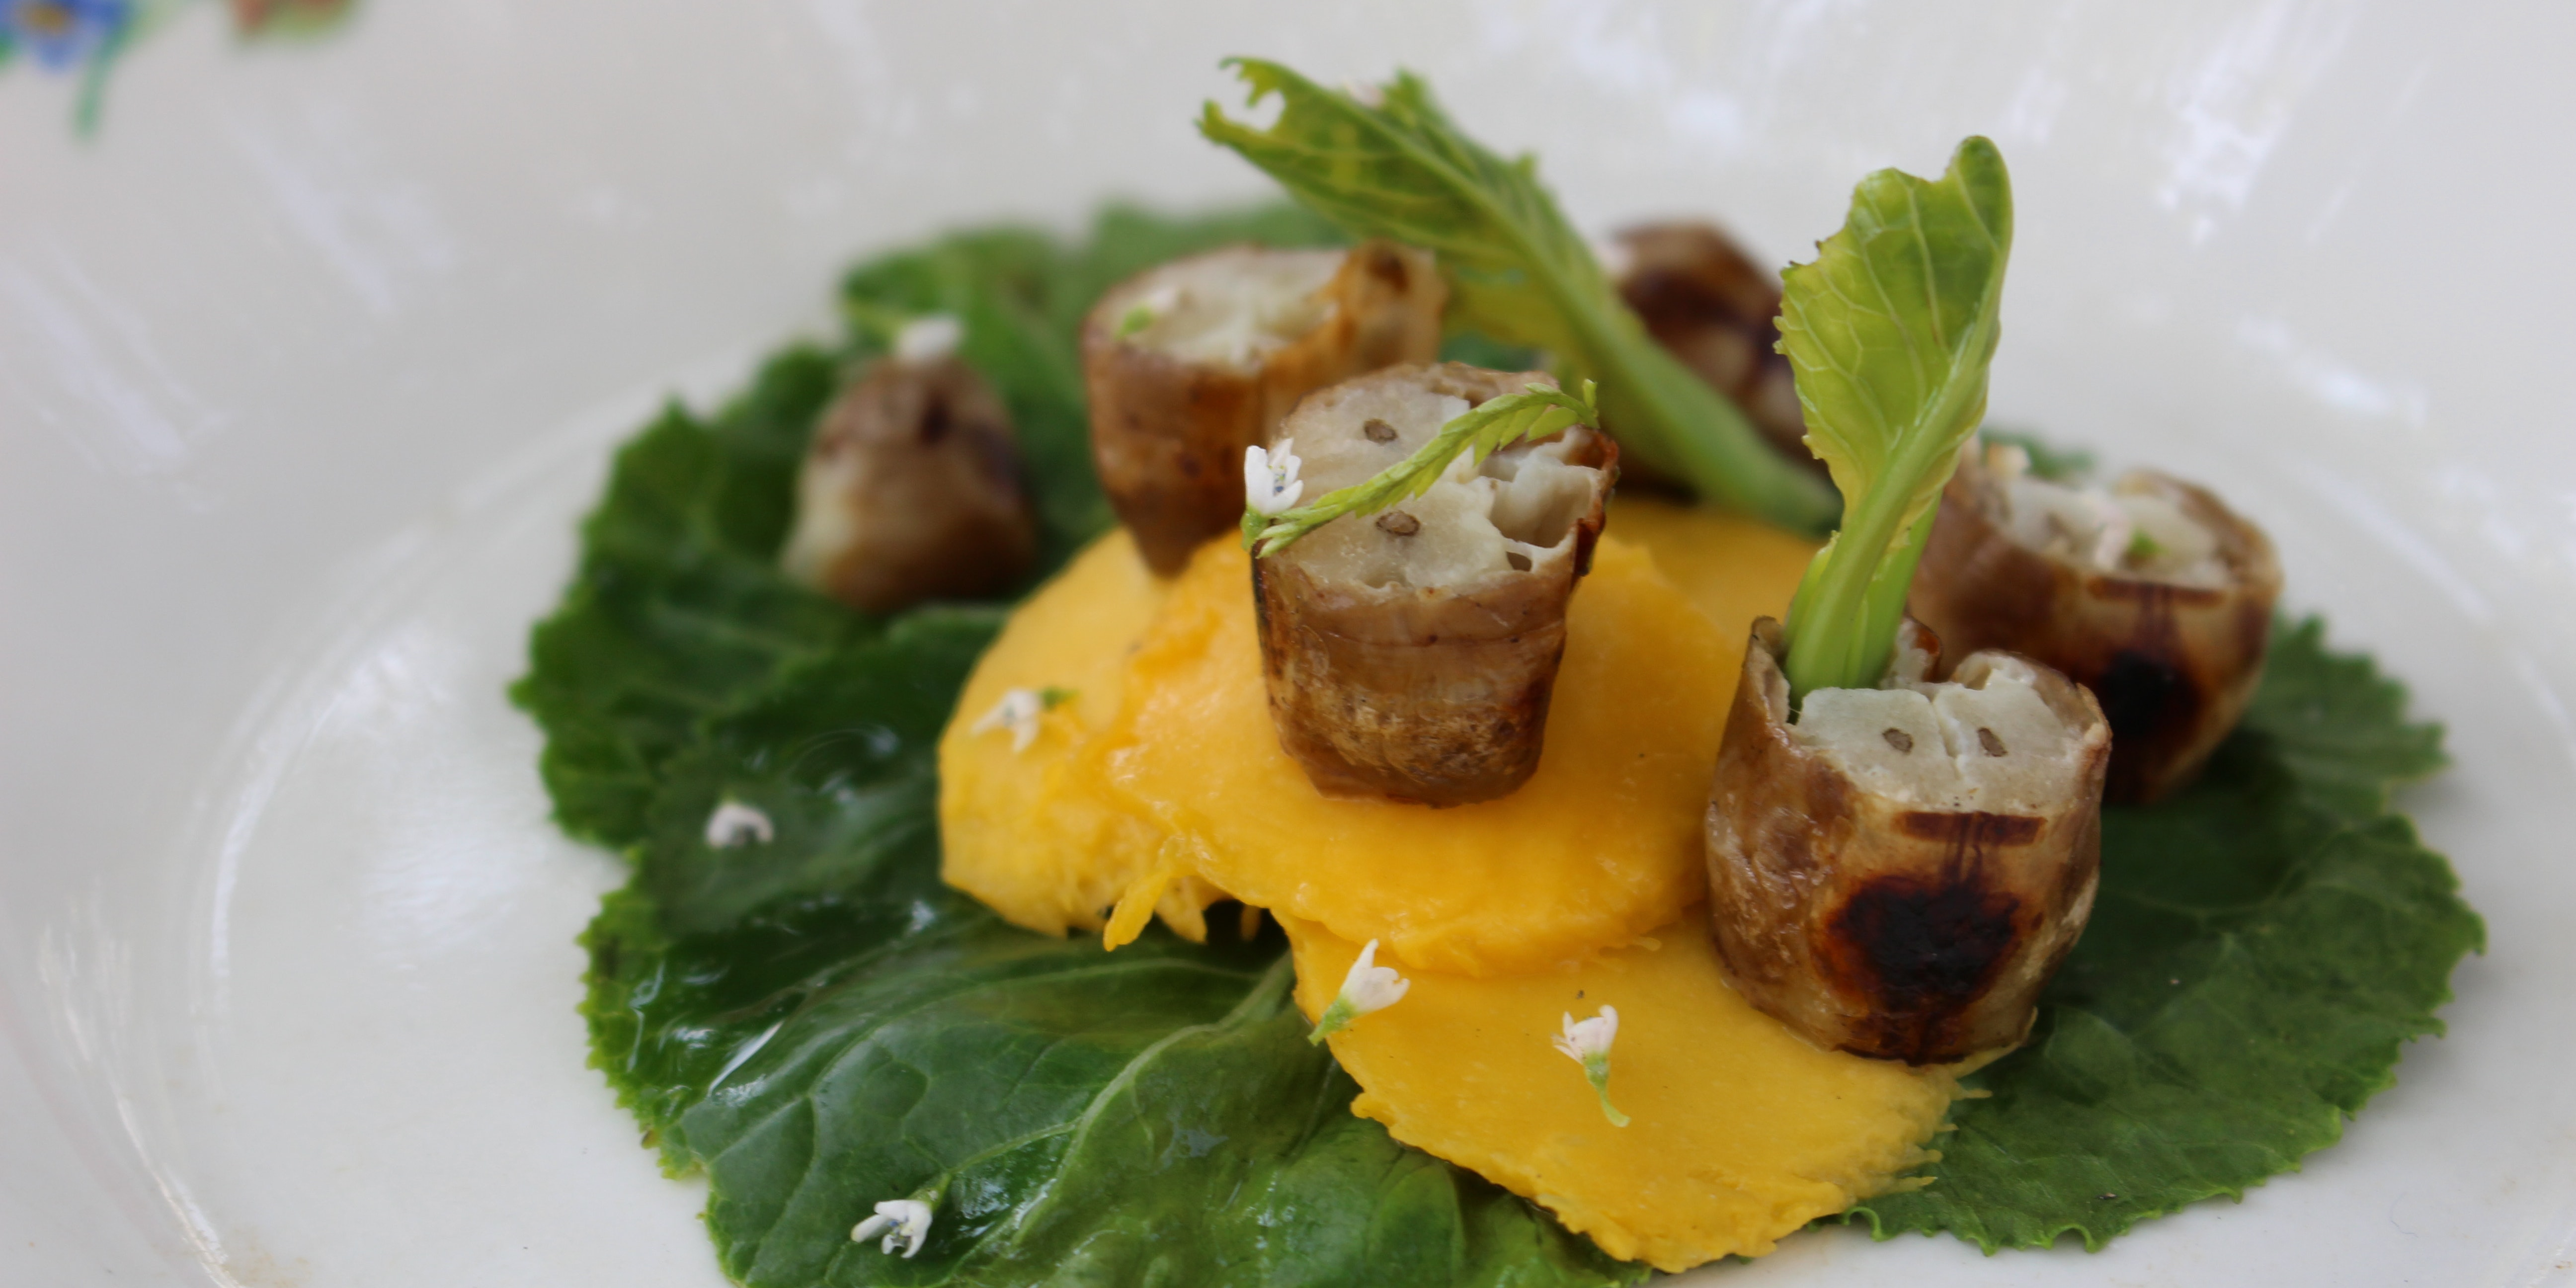 Gourmet bug dishes, like the termite queen with mango shown here, force us to ask how we can eat both sustainably and well.